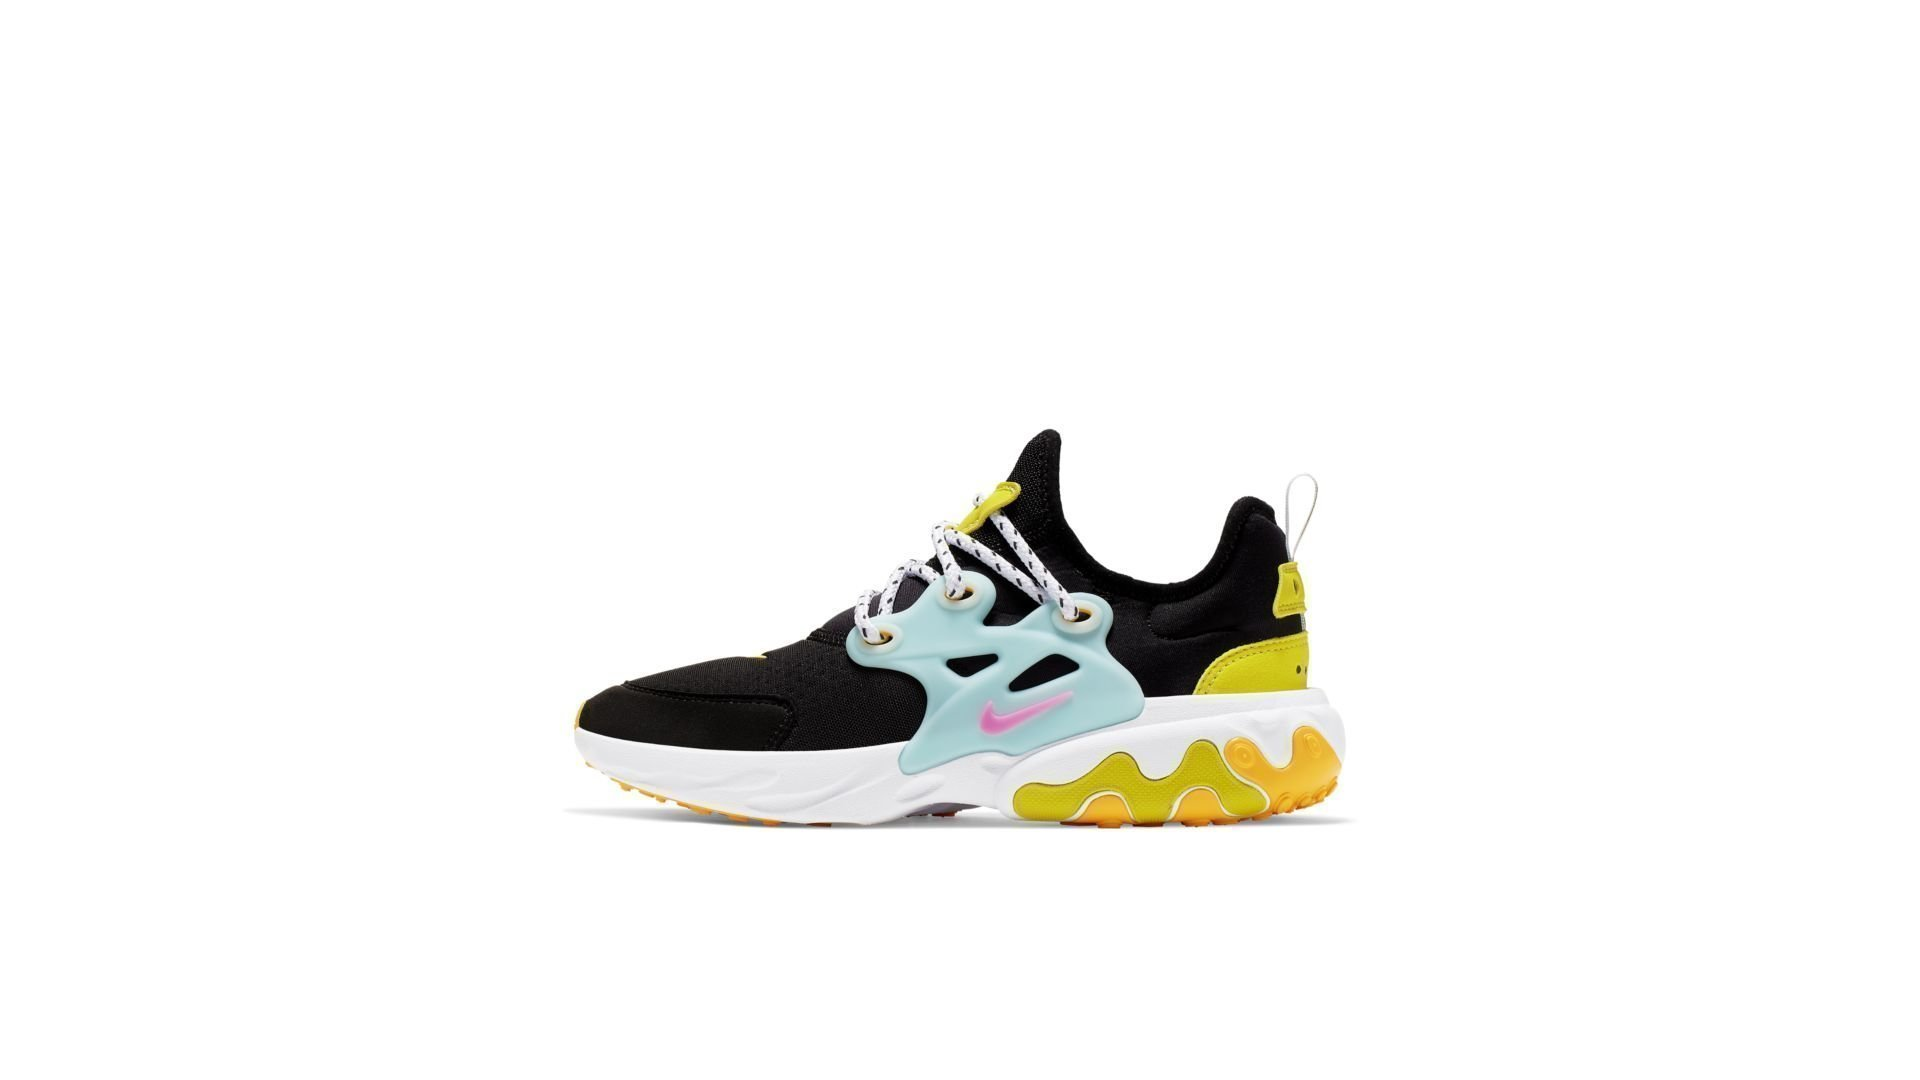 Nike React Presto Black Teal Tint Cyber (GS) (CJ7690-001)